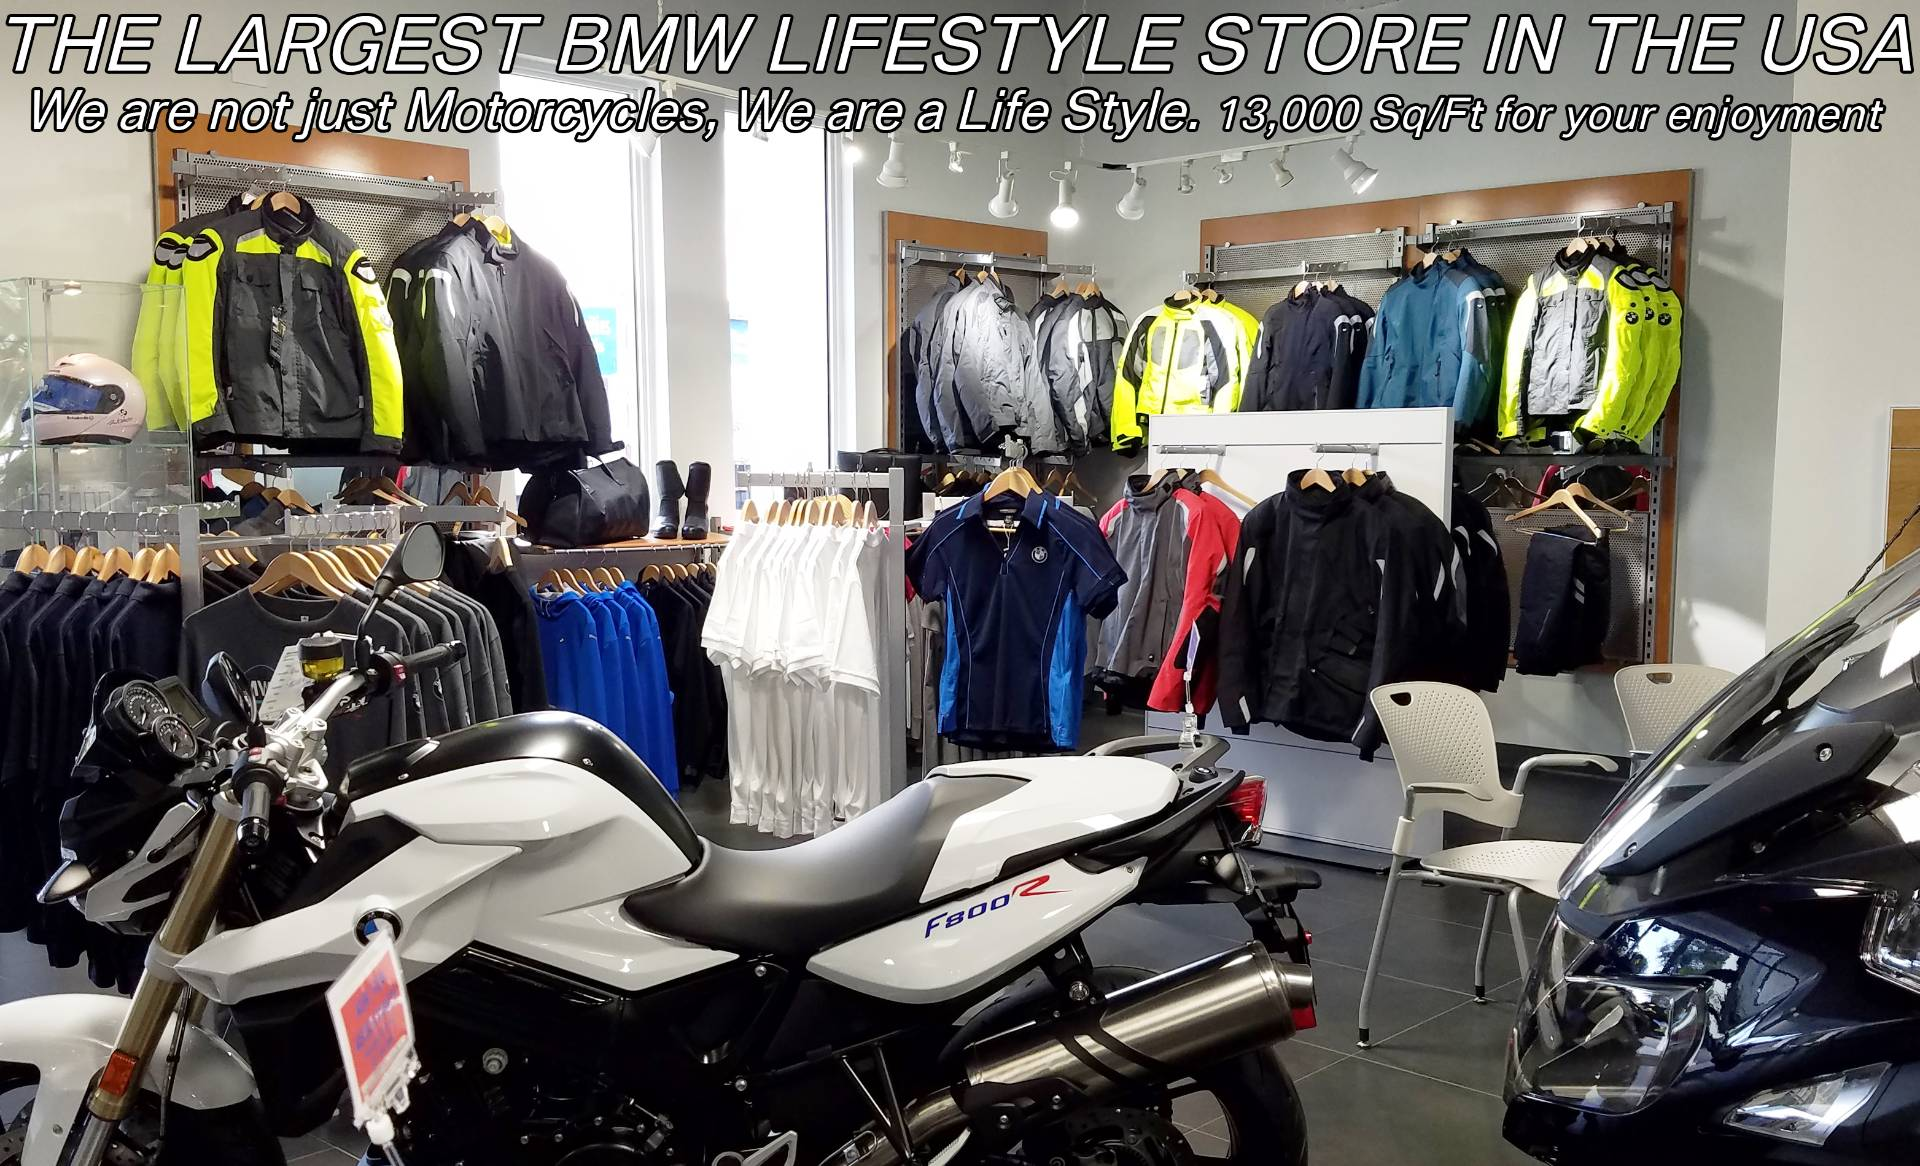 BMW Motorcycles of Miami, Motorcycles of Miami, Motorcycles Miami, New Motorcycles, Used Motorcycles, pre-owned. #BMWMotorcyclesOfMiami #MotorcyclesOfMiami. - Photo 25